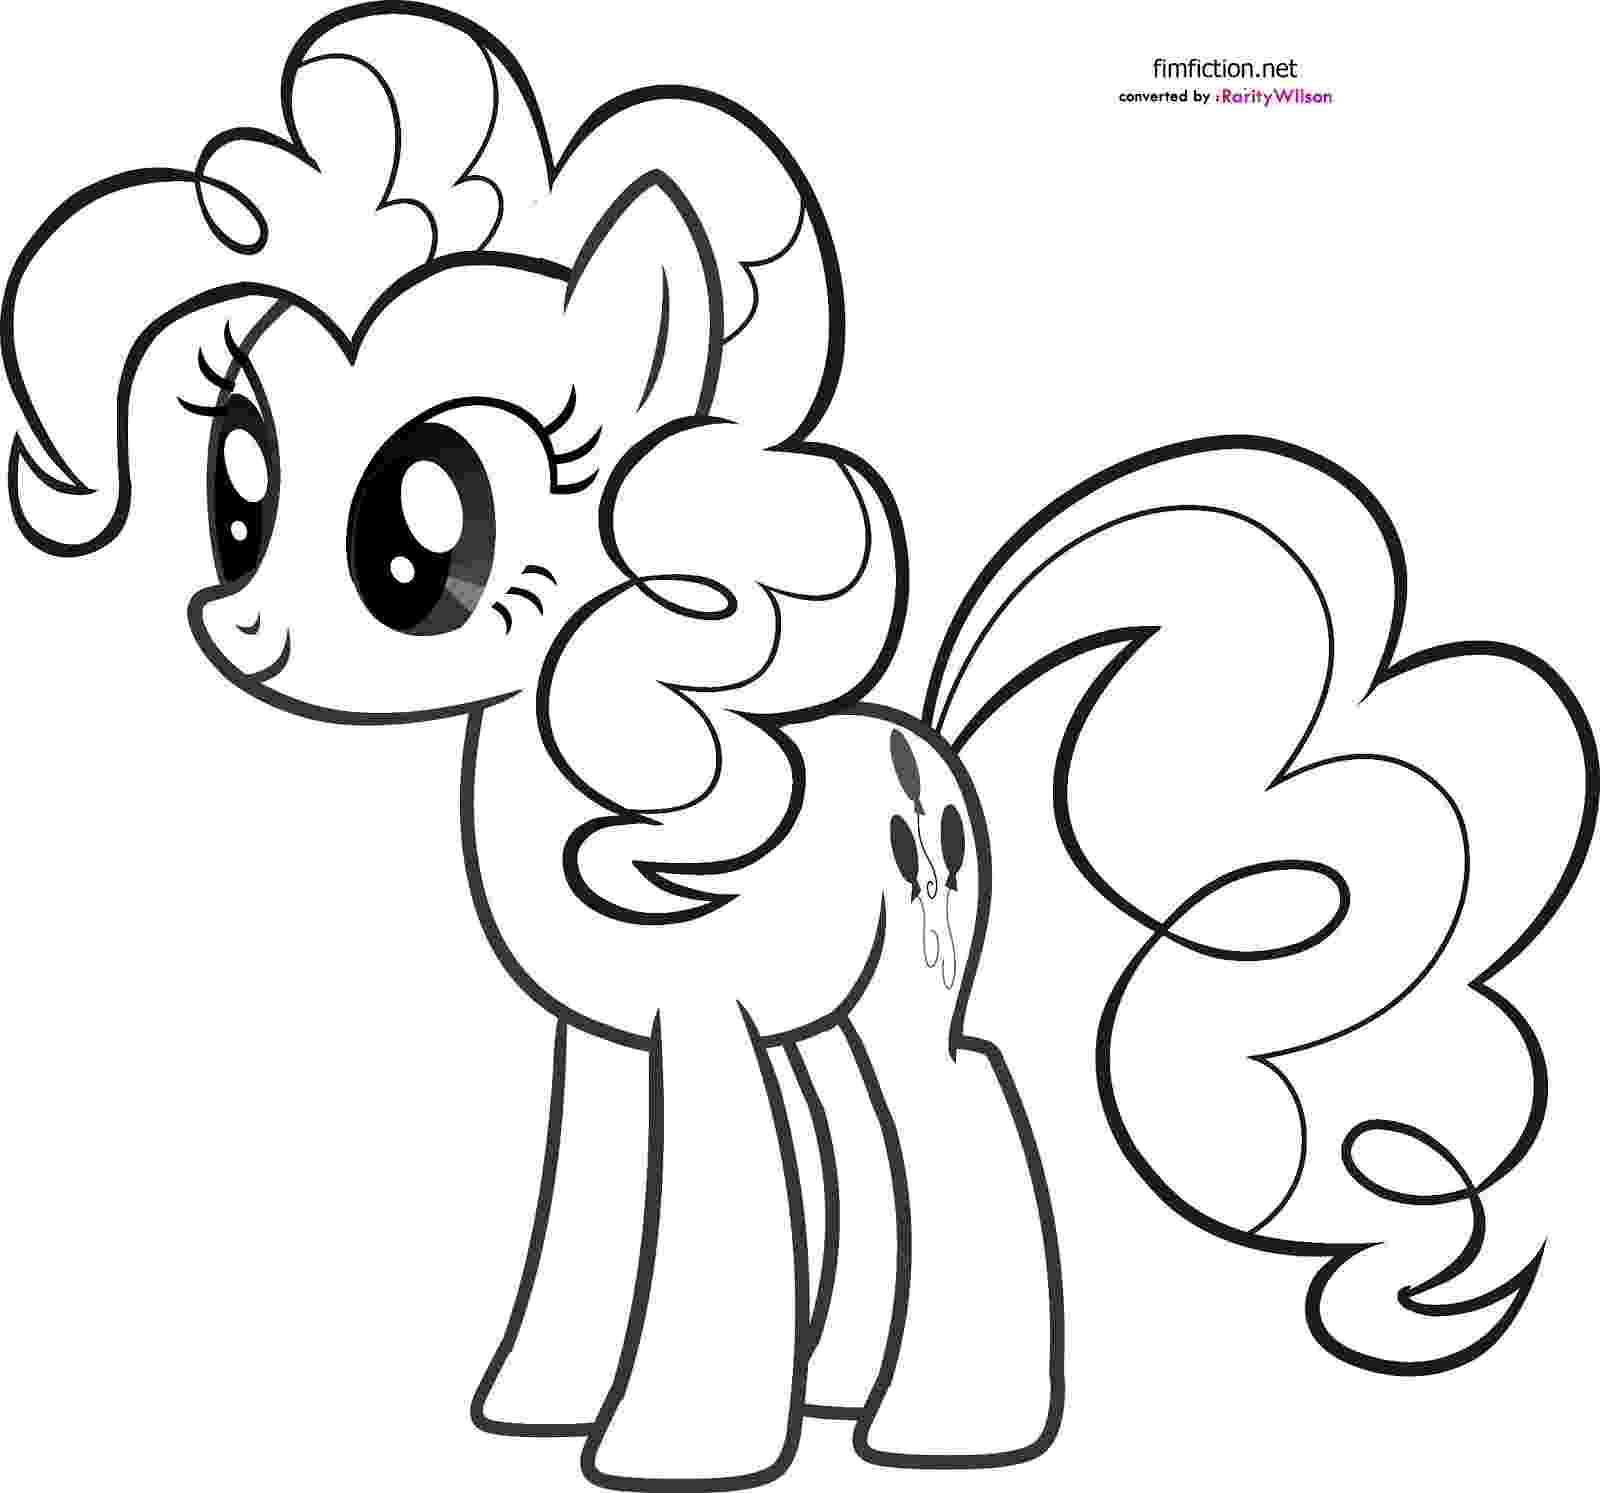 pinkie pie coloring pages my little pony pinkie pie coloring pages team colors coloring pages pinkie pie